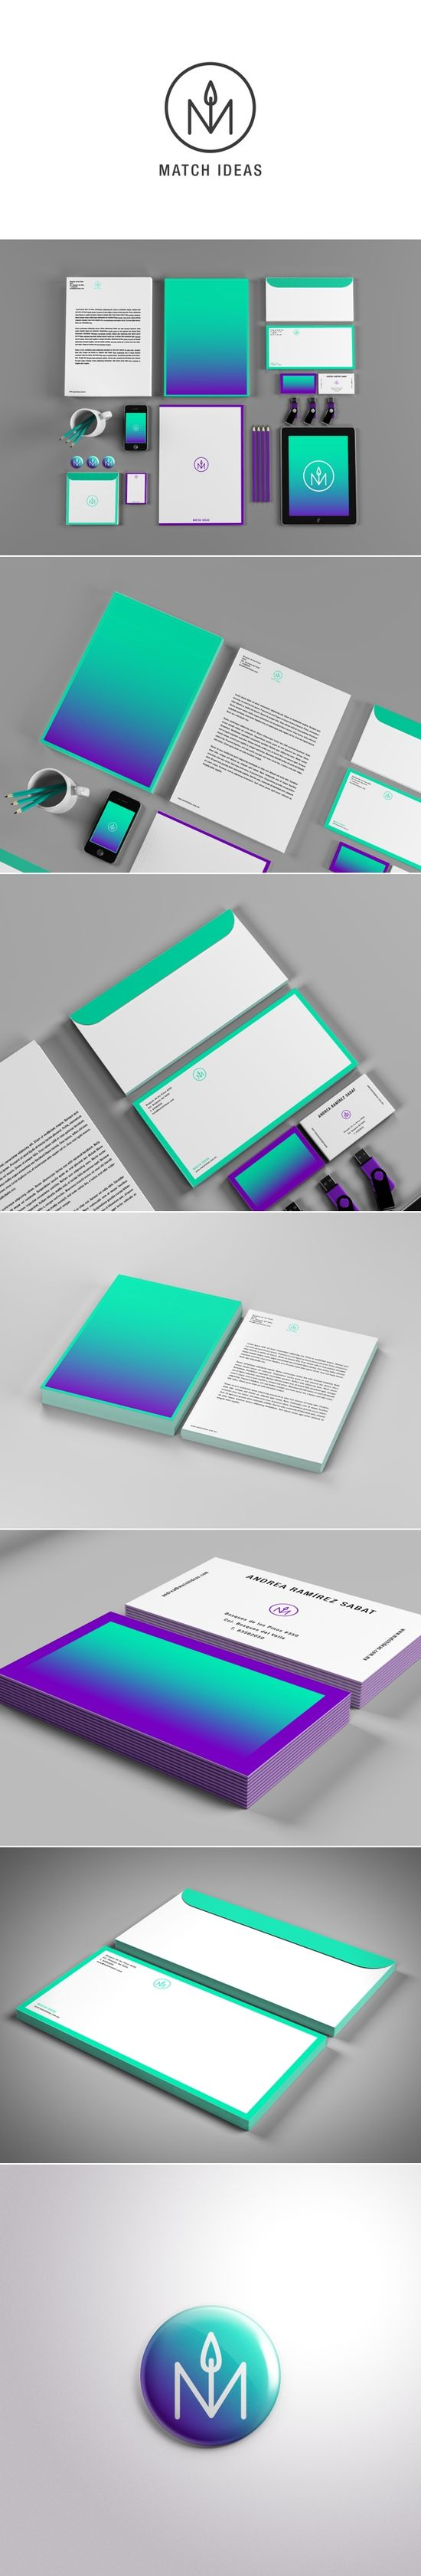 107 best business cards and branding for artists images on 107 best business cards and branding for artists images on pinterest business cards corporate identity and deco magicingreecefo Images